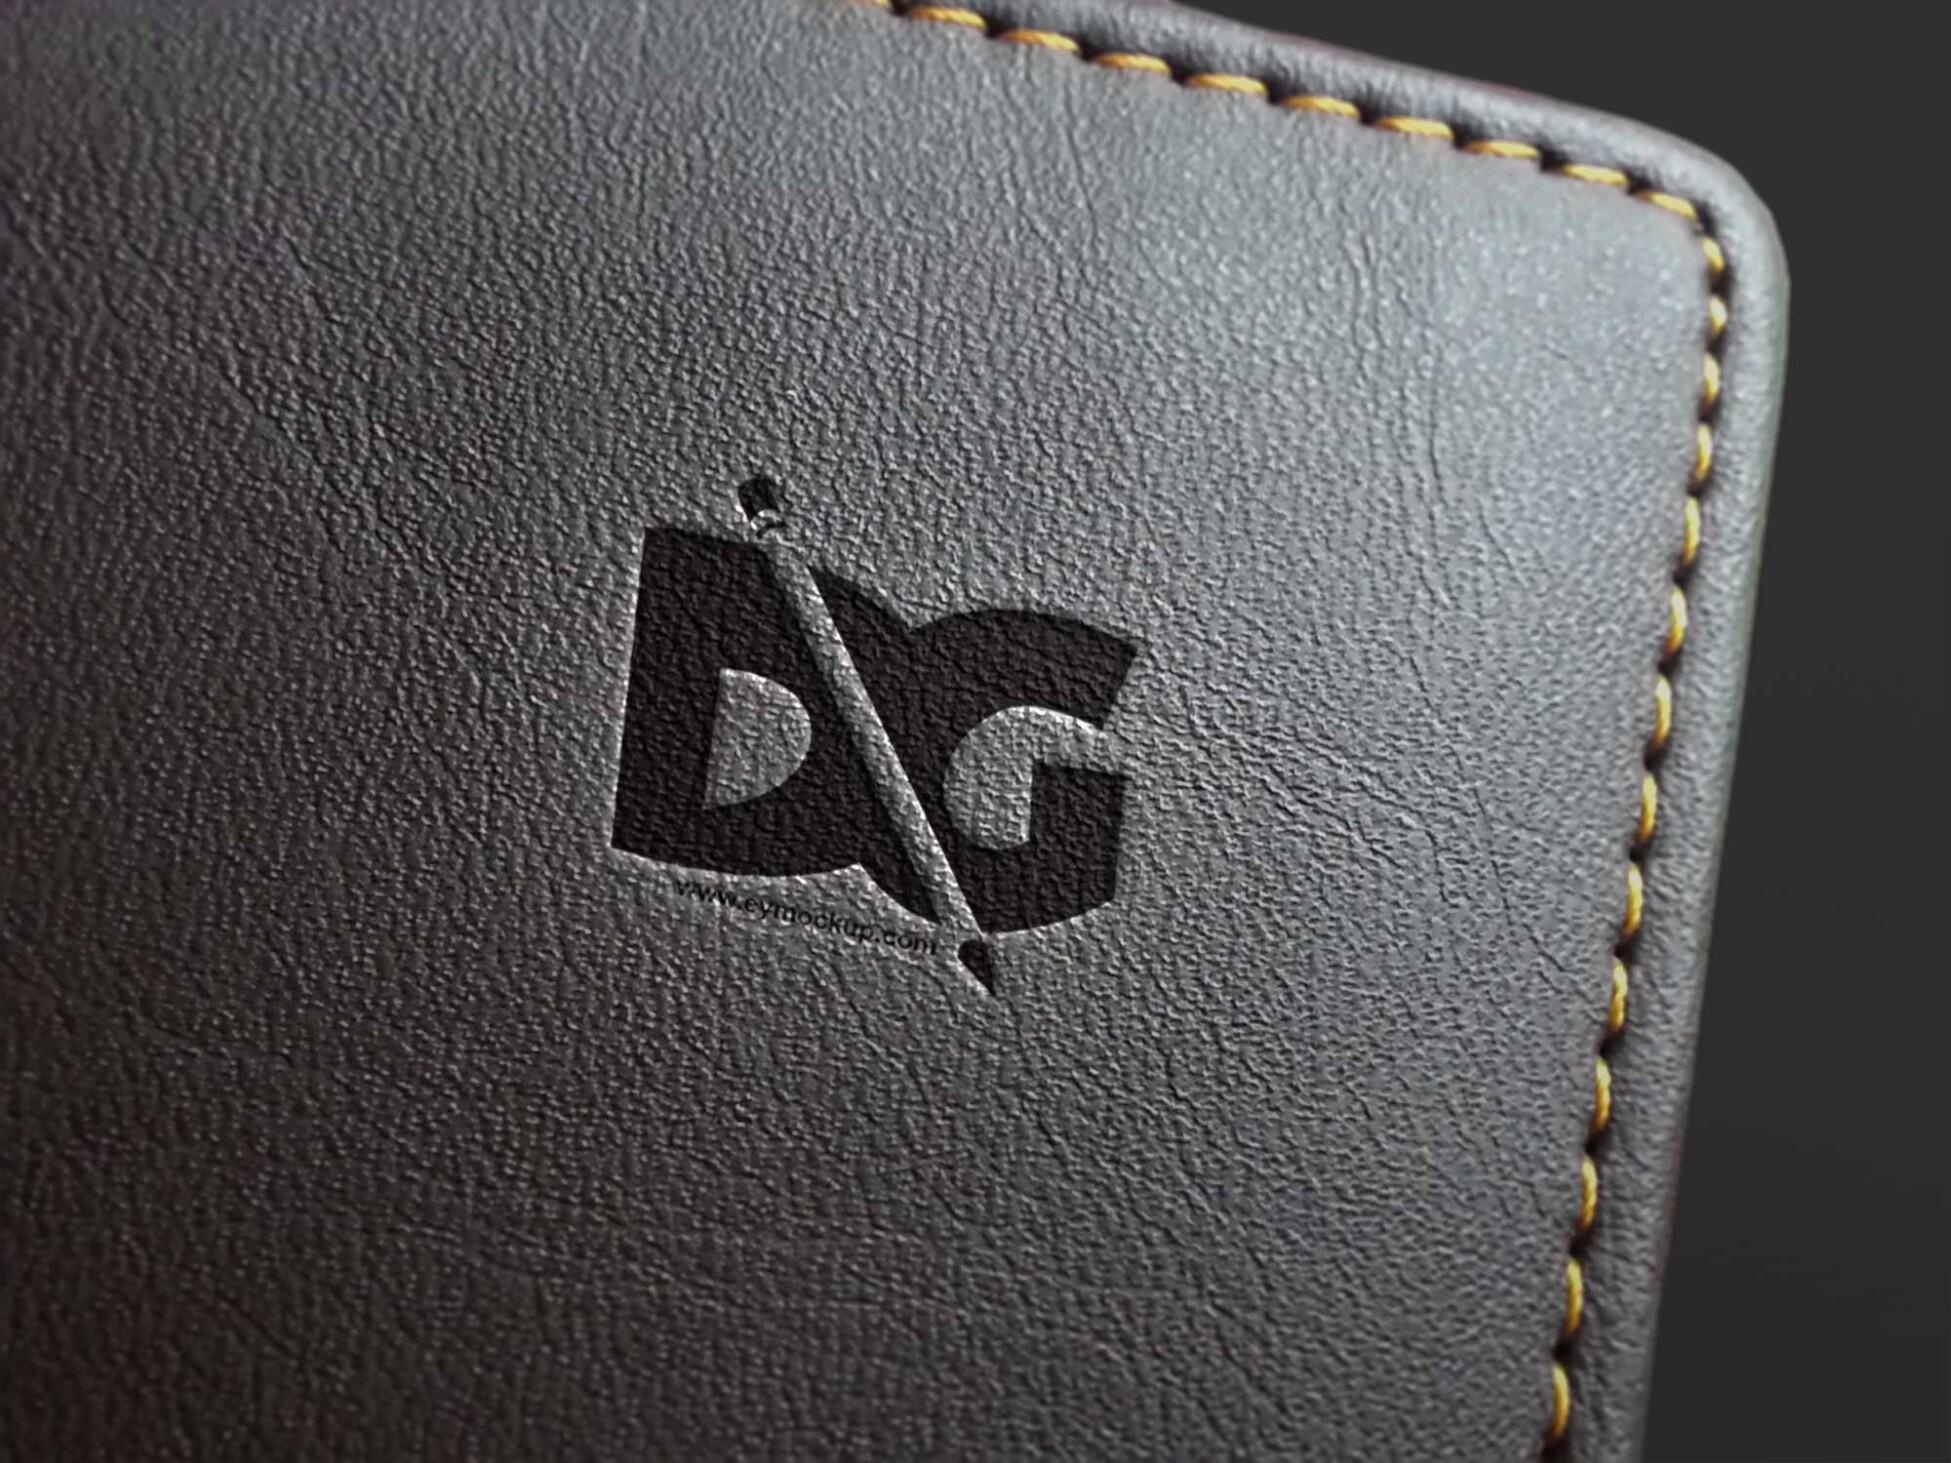 leather logo mockup embossed free psd mockup new mockup leather logo mockup embossed free psd